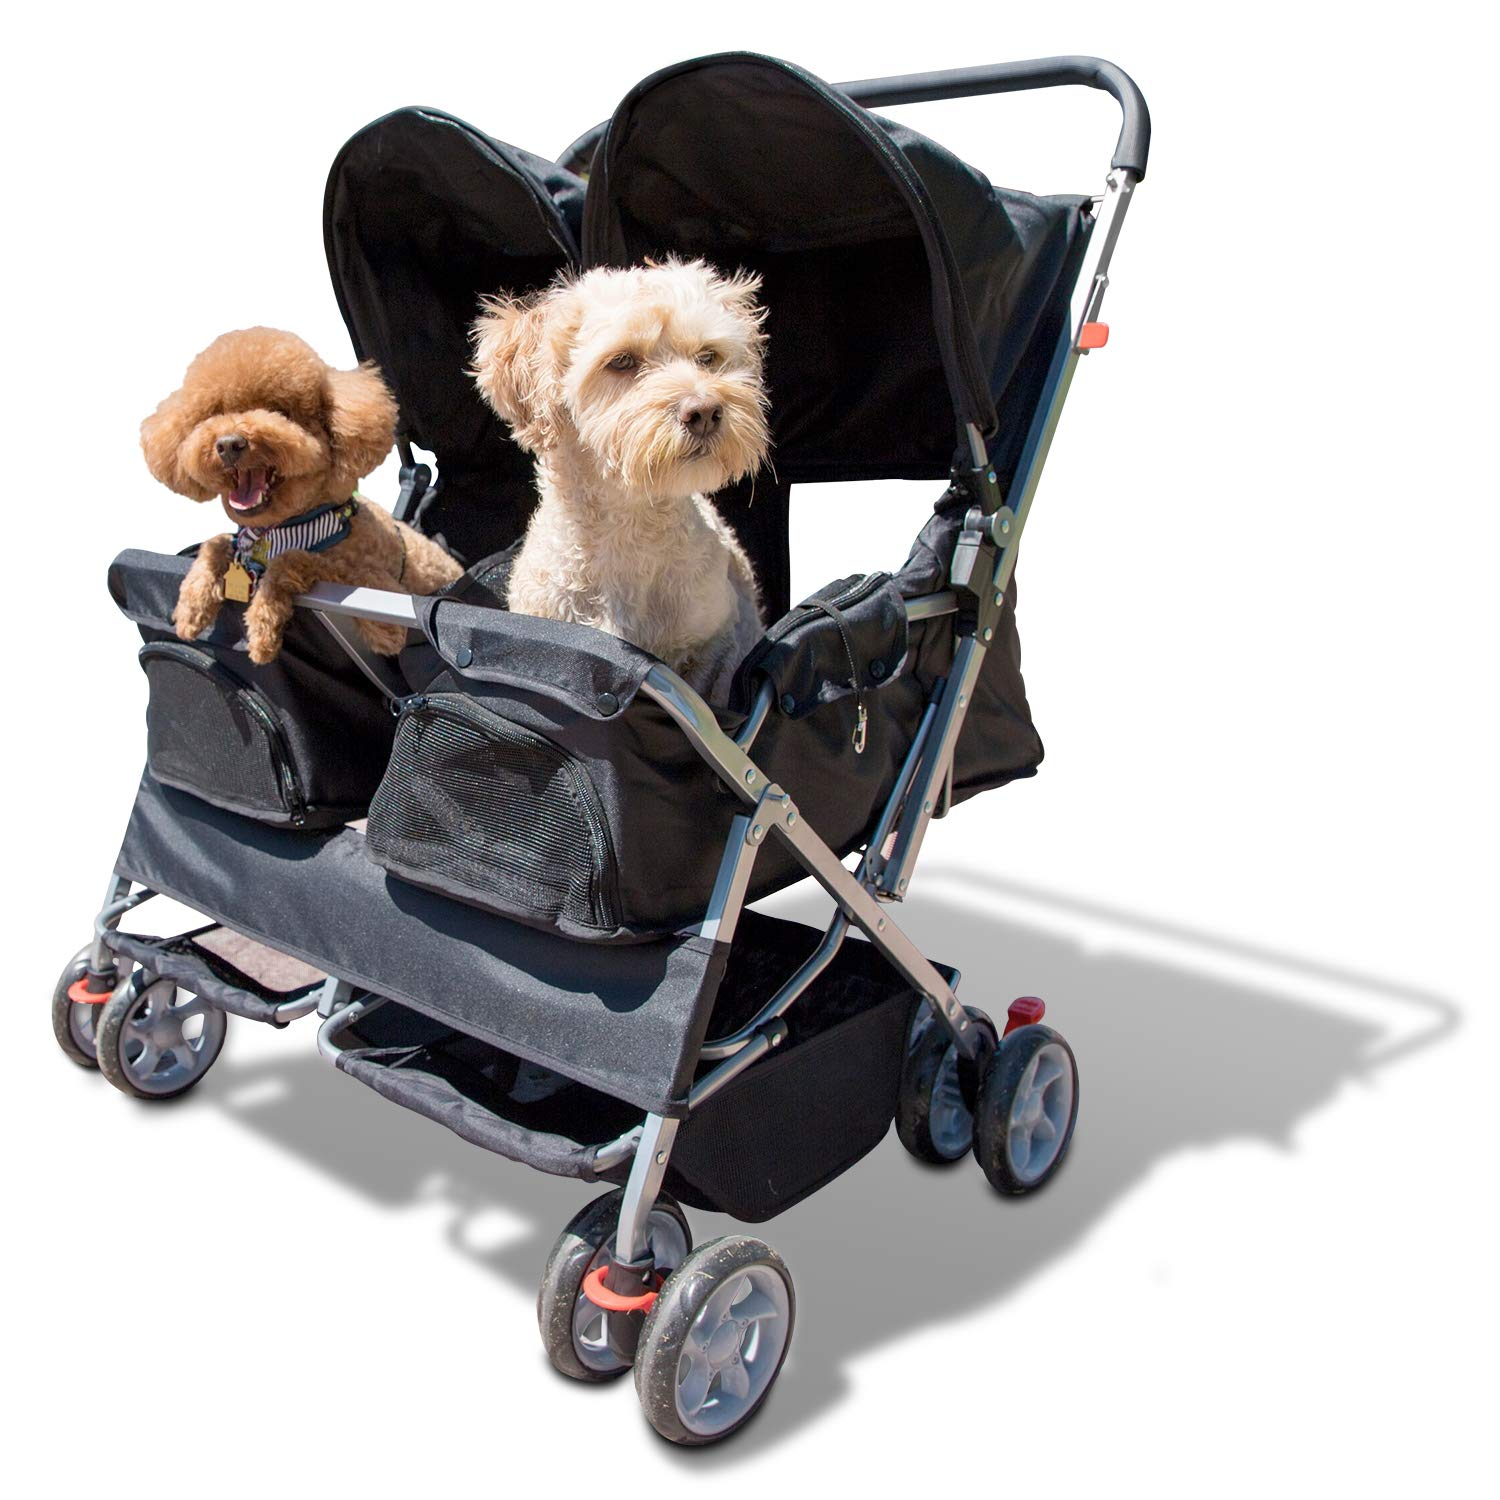 Paws & Pals Double Pet Stroller – 4 Wheels Lightweight Two Puppy, Dog & Cat Strollers – Best for Walking 2 Small/Medium…